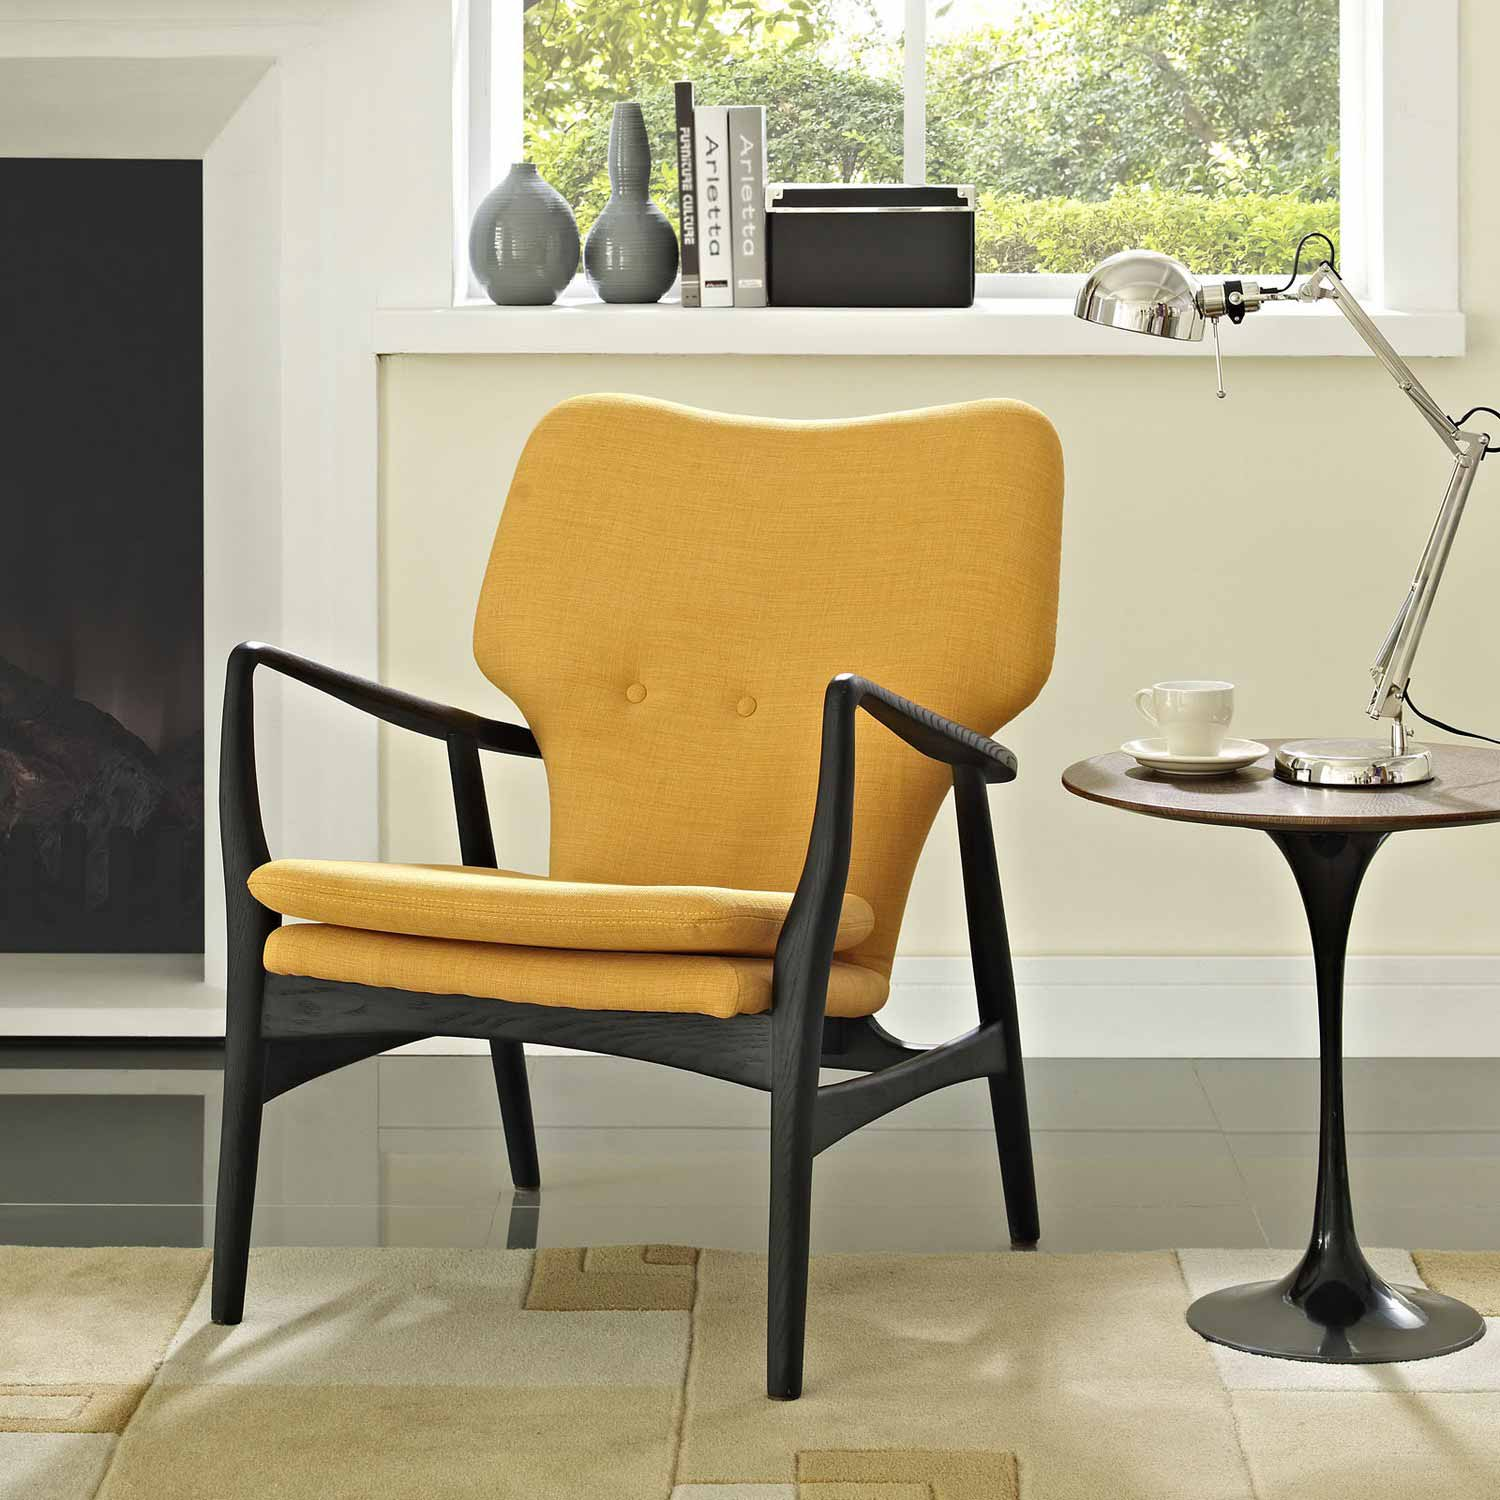 Modway Heed Lounge Chair - Black/Yellow